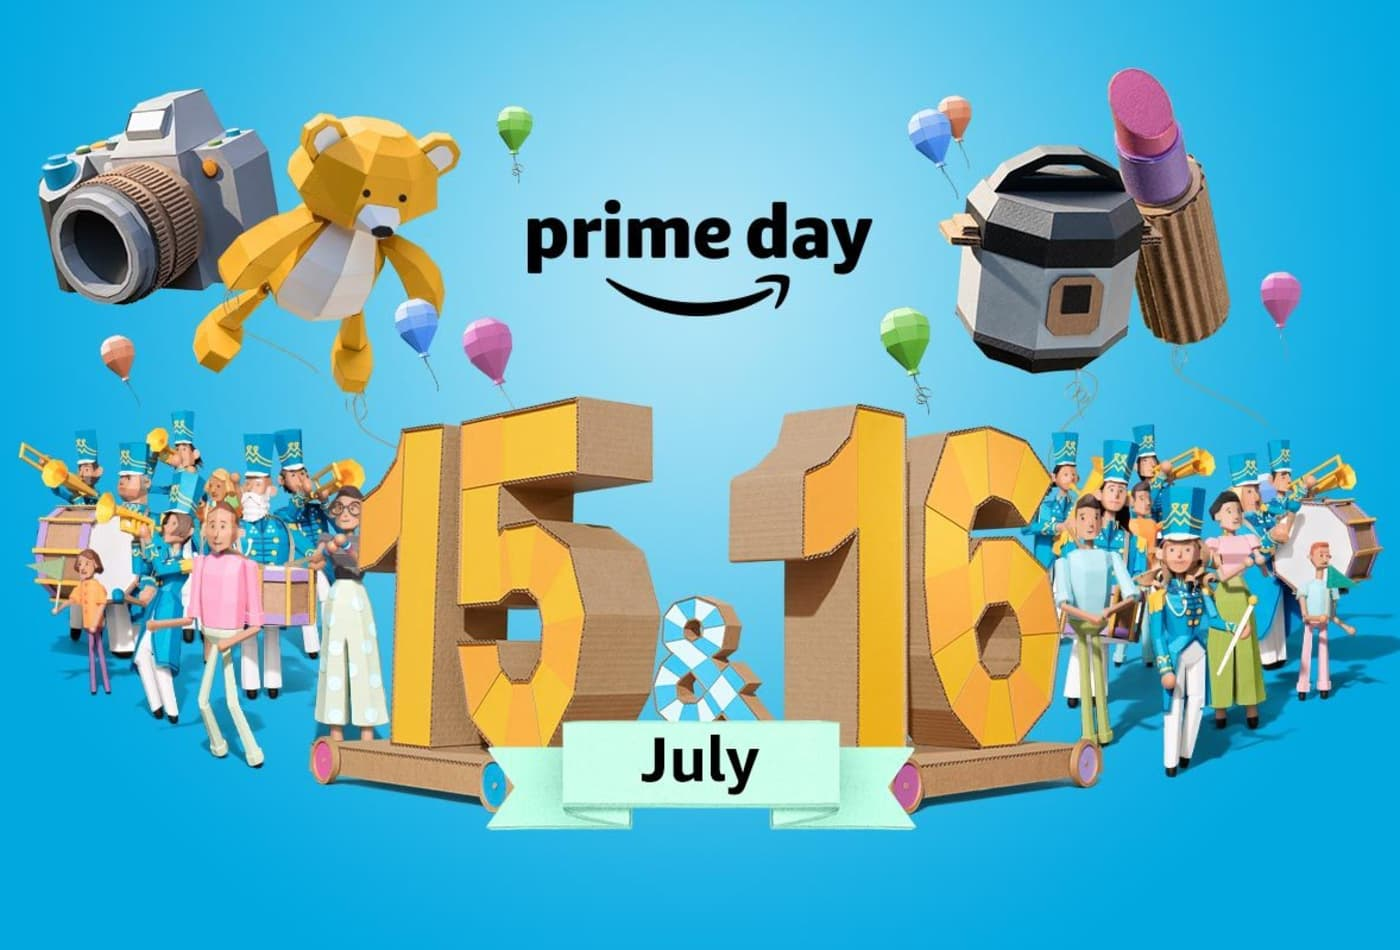 5 simple ways to prepare to save big during Amazon's Prime Day